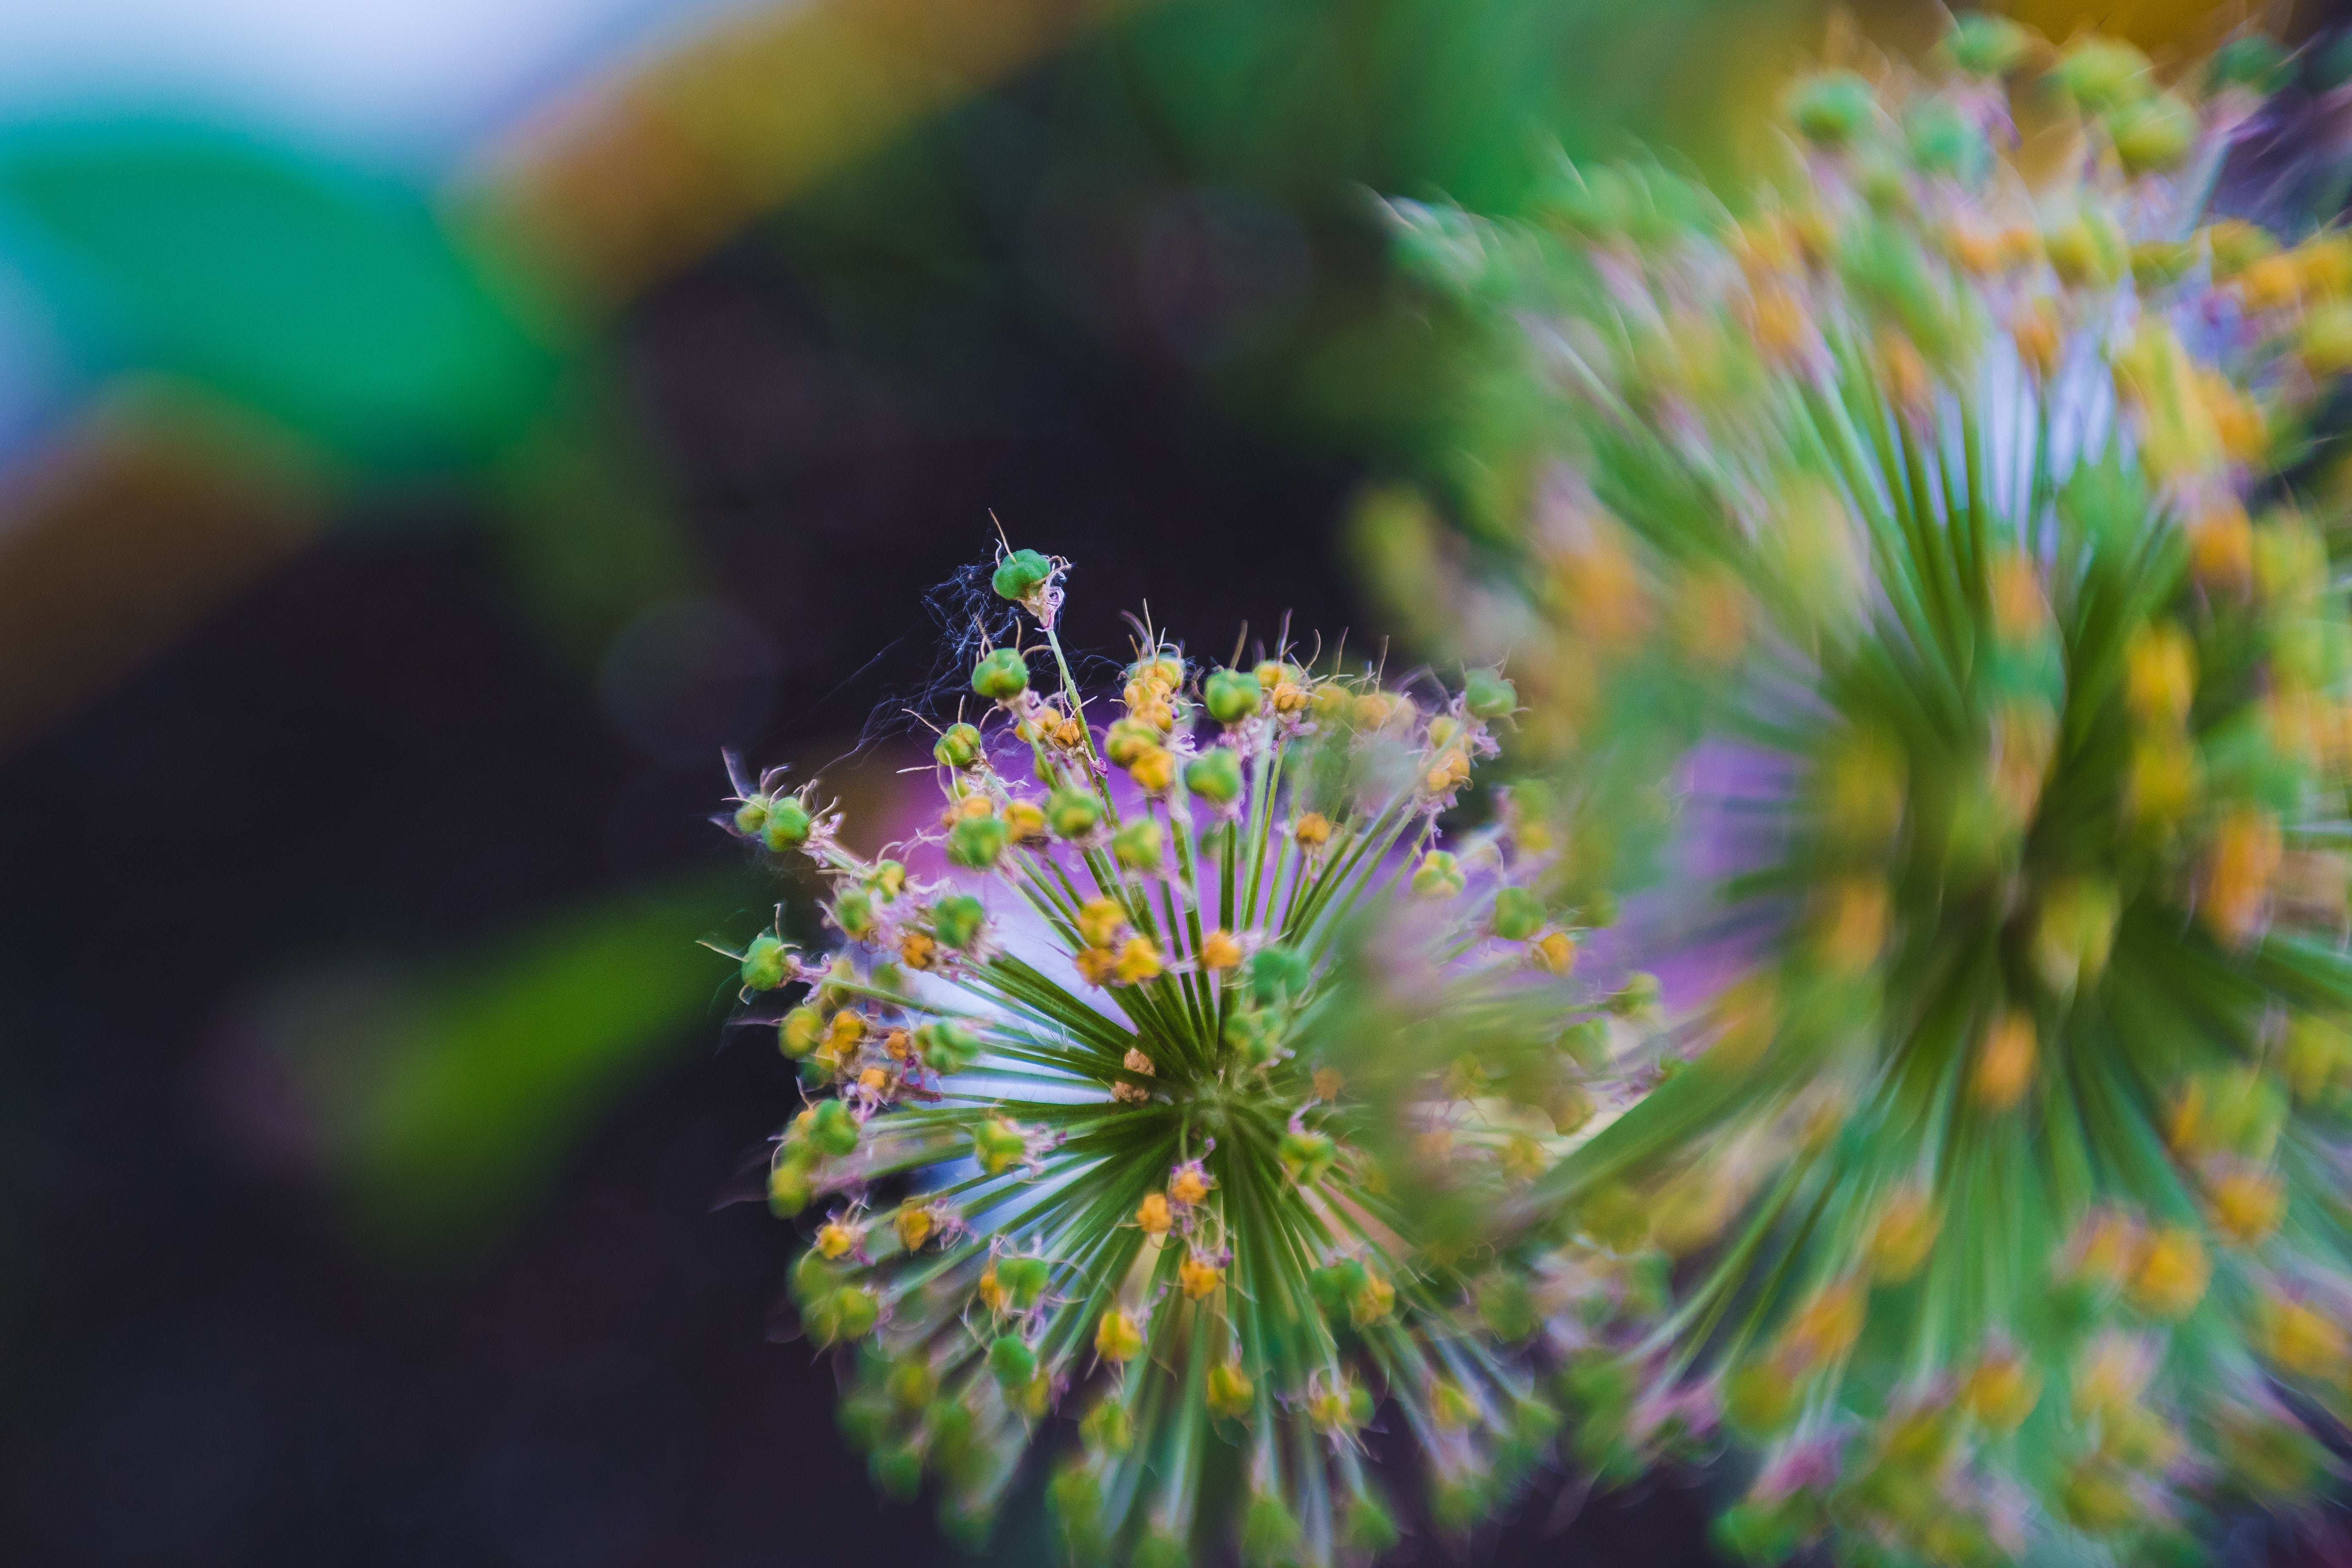 Flower up close macro green purple and yellow fuzzy long green rods selective focus Lensbaby featured photos